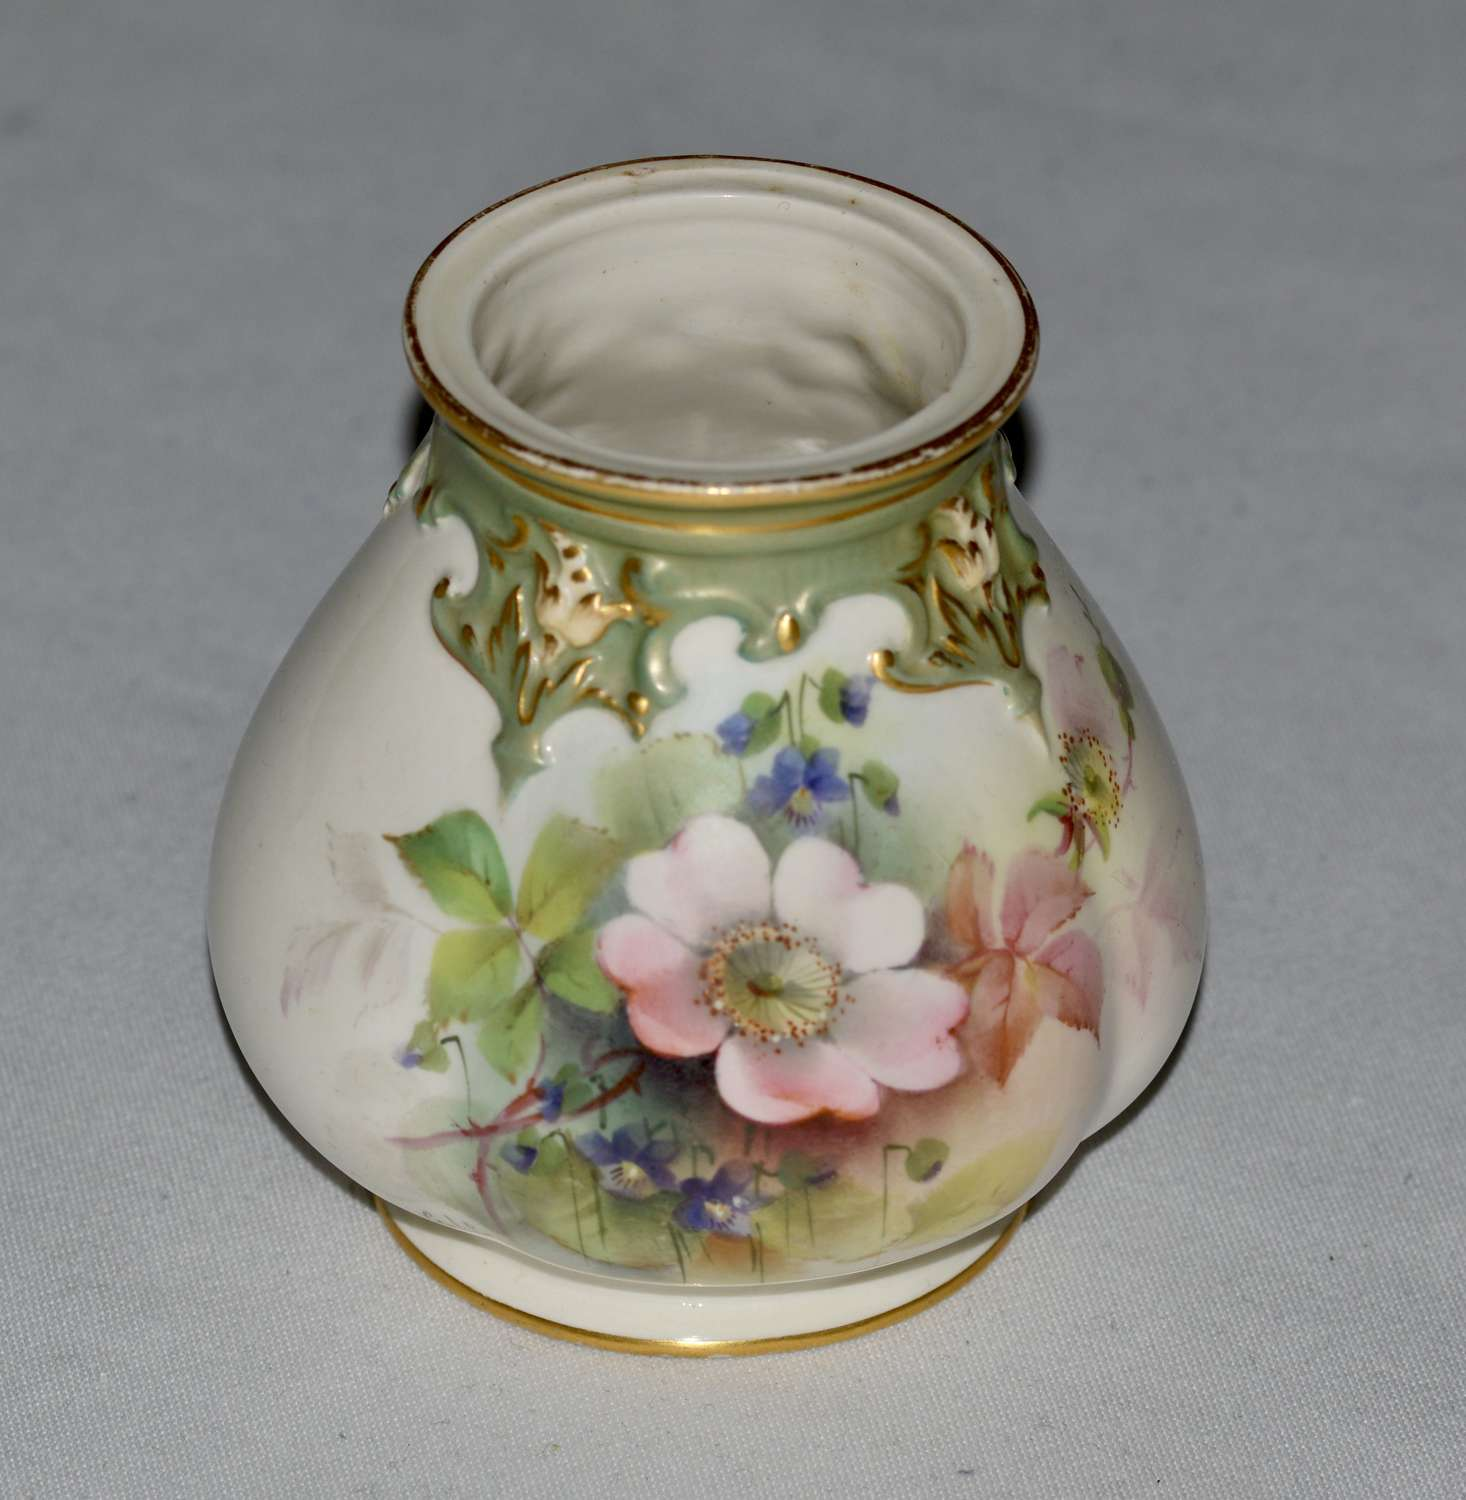 1908 - Royal Worcester - Hand Painted Ovoid Shaped Small Vase - Cole